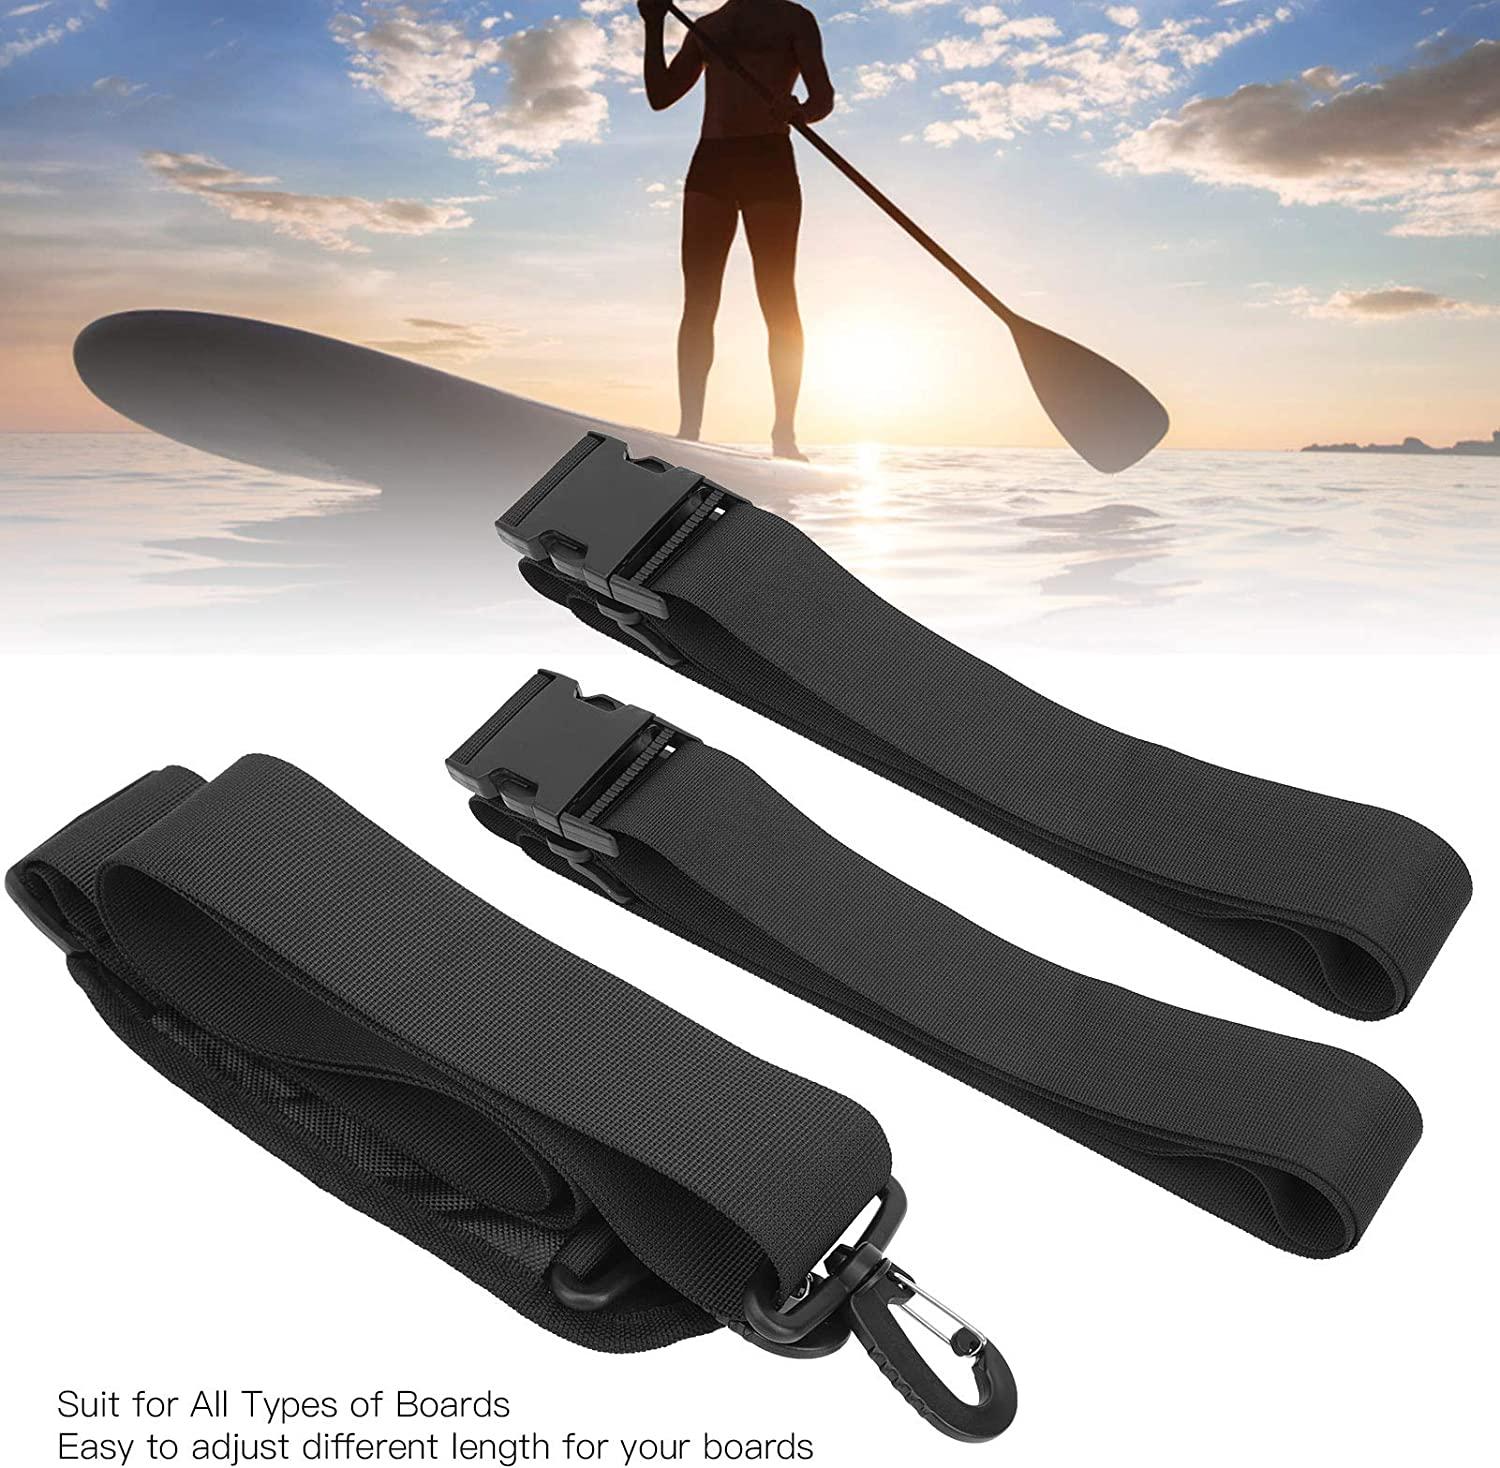 Fybida Canoeing Webbing Poly Strapping Surfing Webbing Rope Sturdy Surfboard Bandage for Outdoor